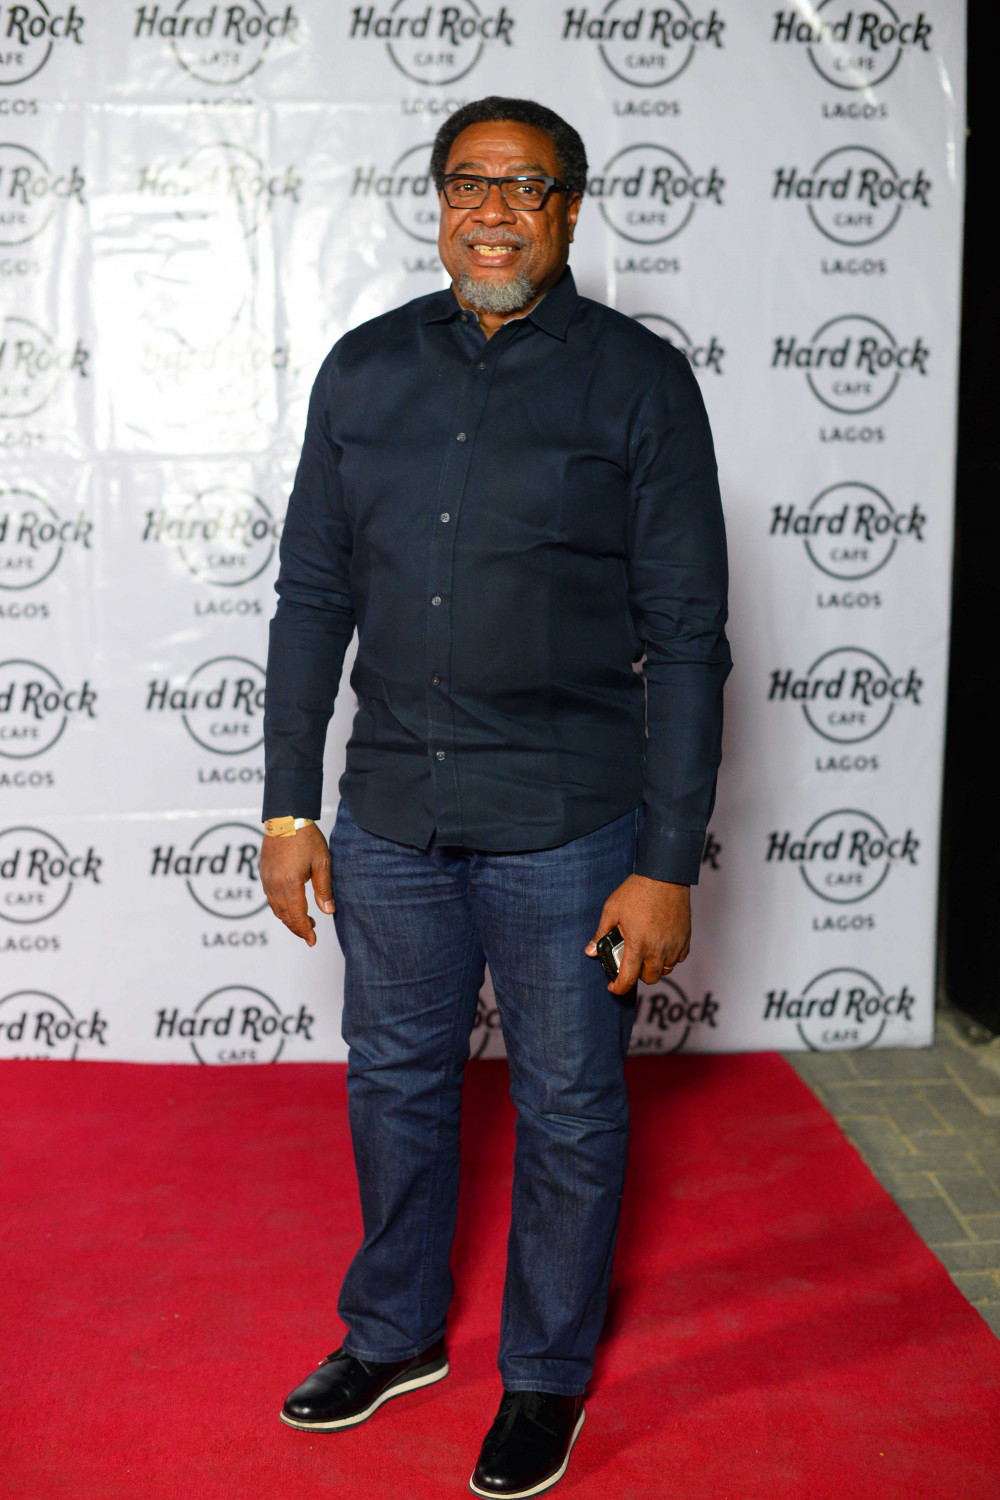 Hard Rock Cafe Lagos Launch BellaNaija DSC_0196